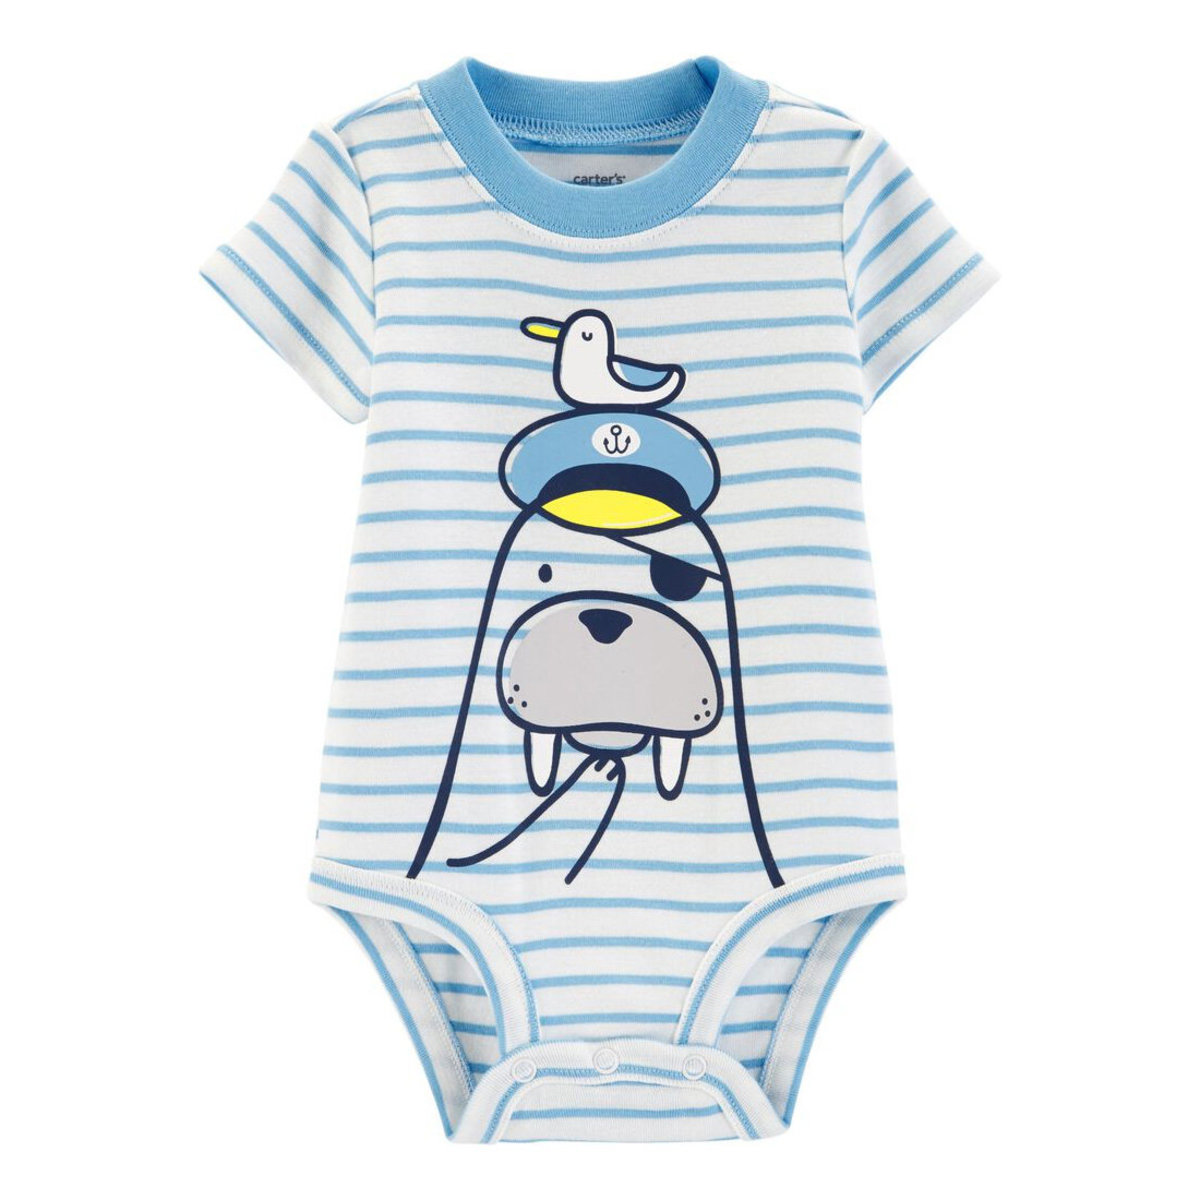 Walrus Collectible Baby Bodysuit 9-18 months (parallel)